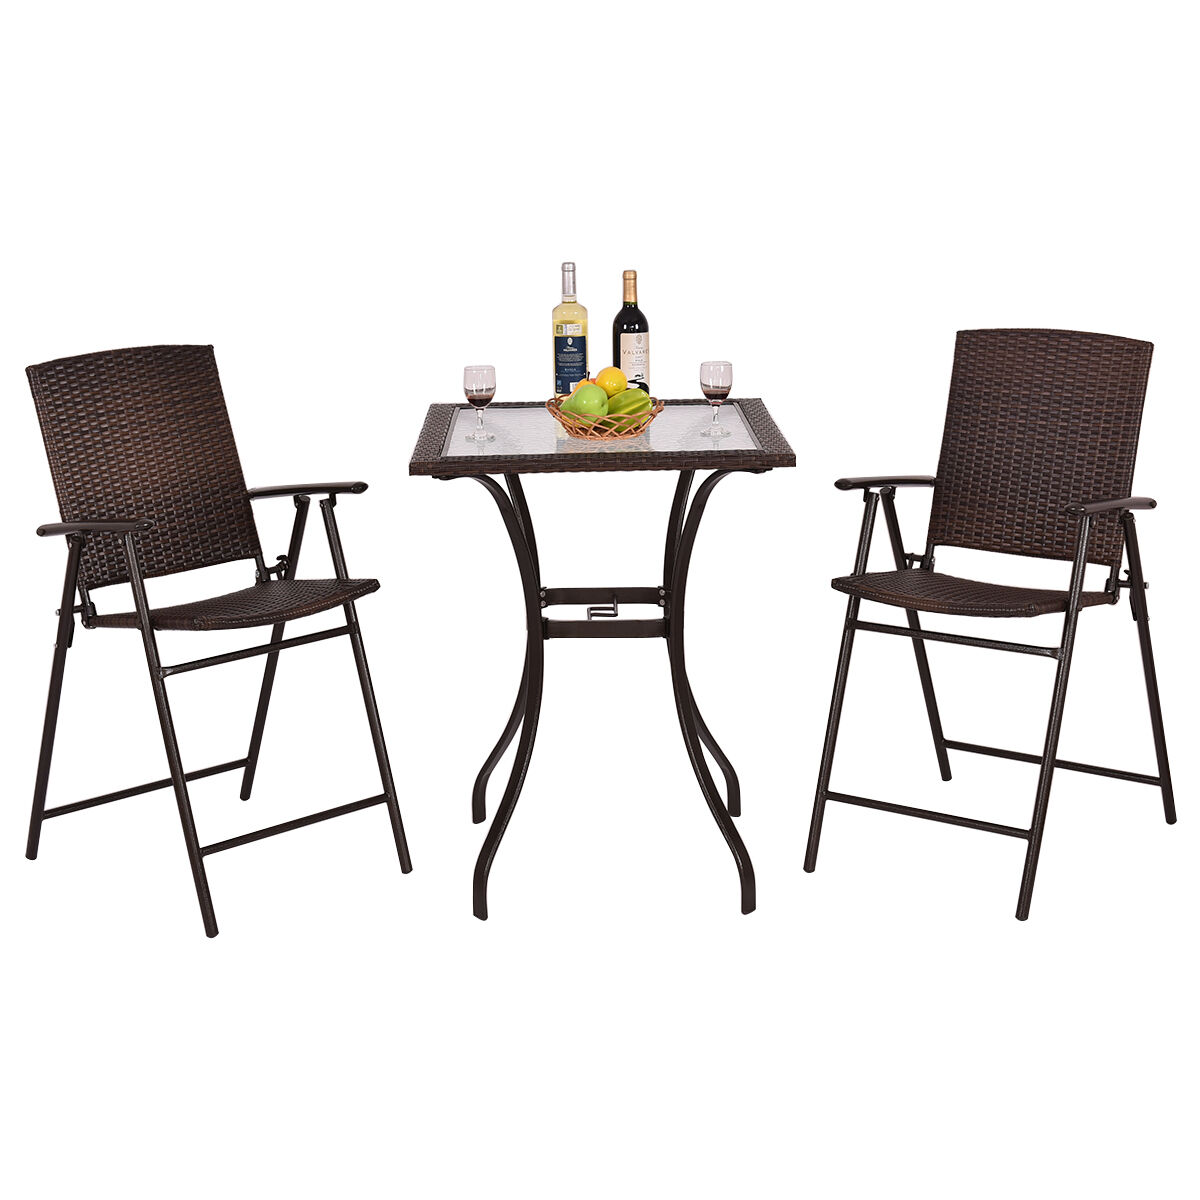 cheap table chairs vintage aluminum lawn garden bistro set 2 chair patio rattan balcony